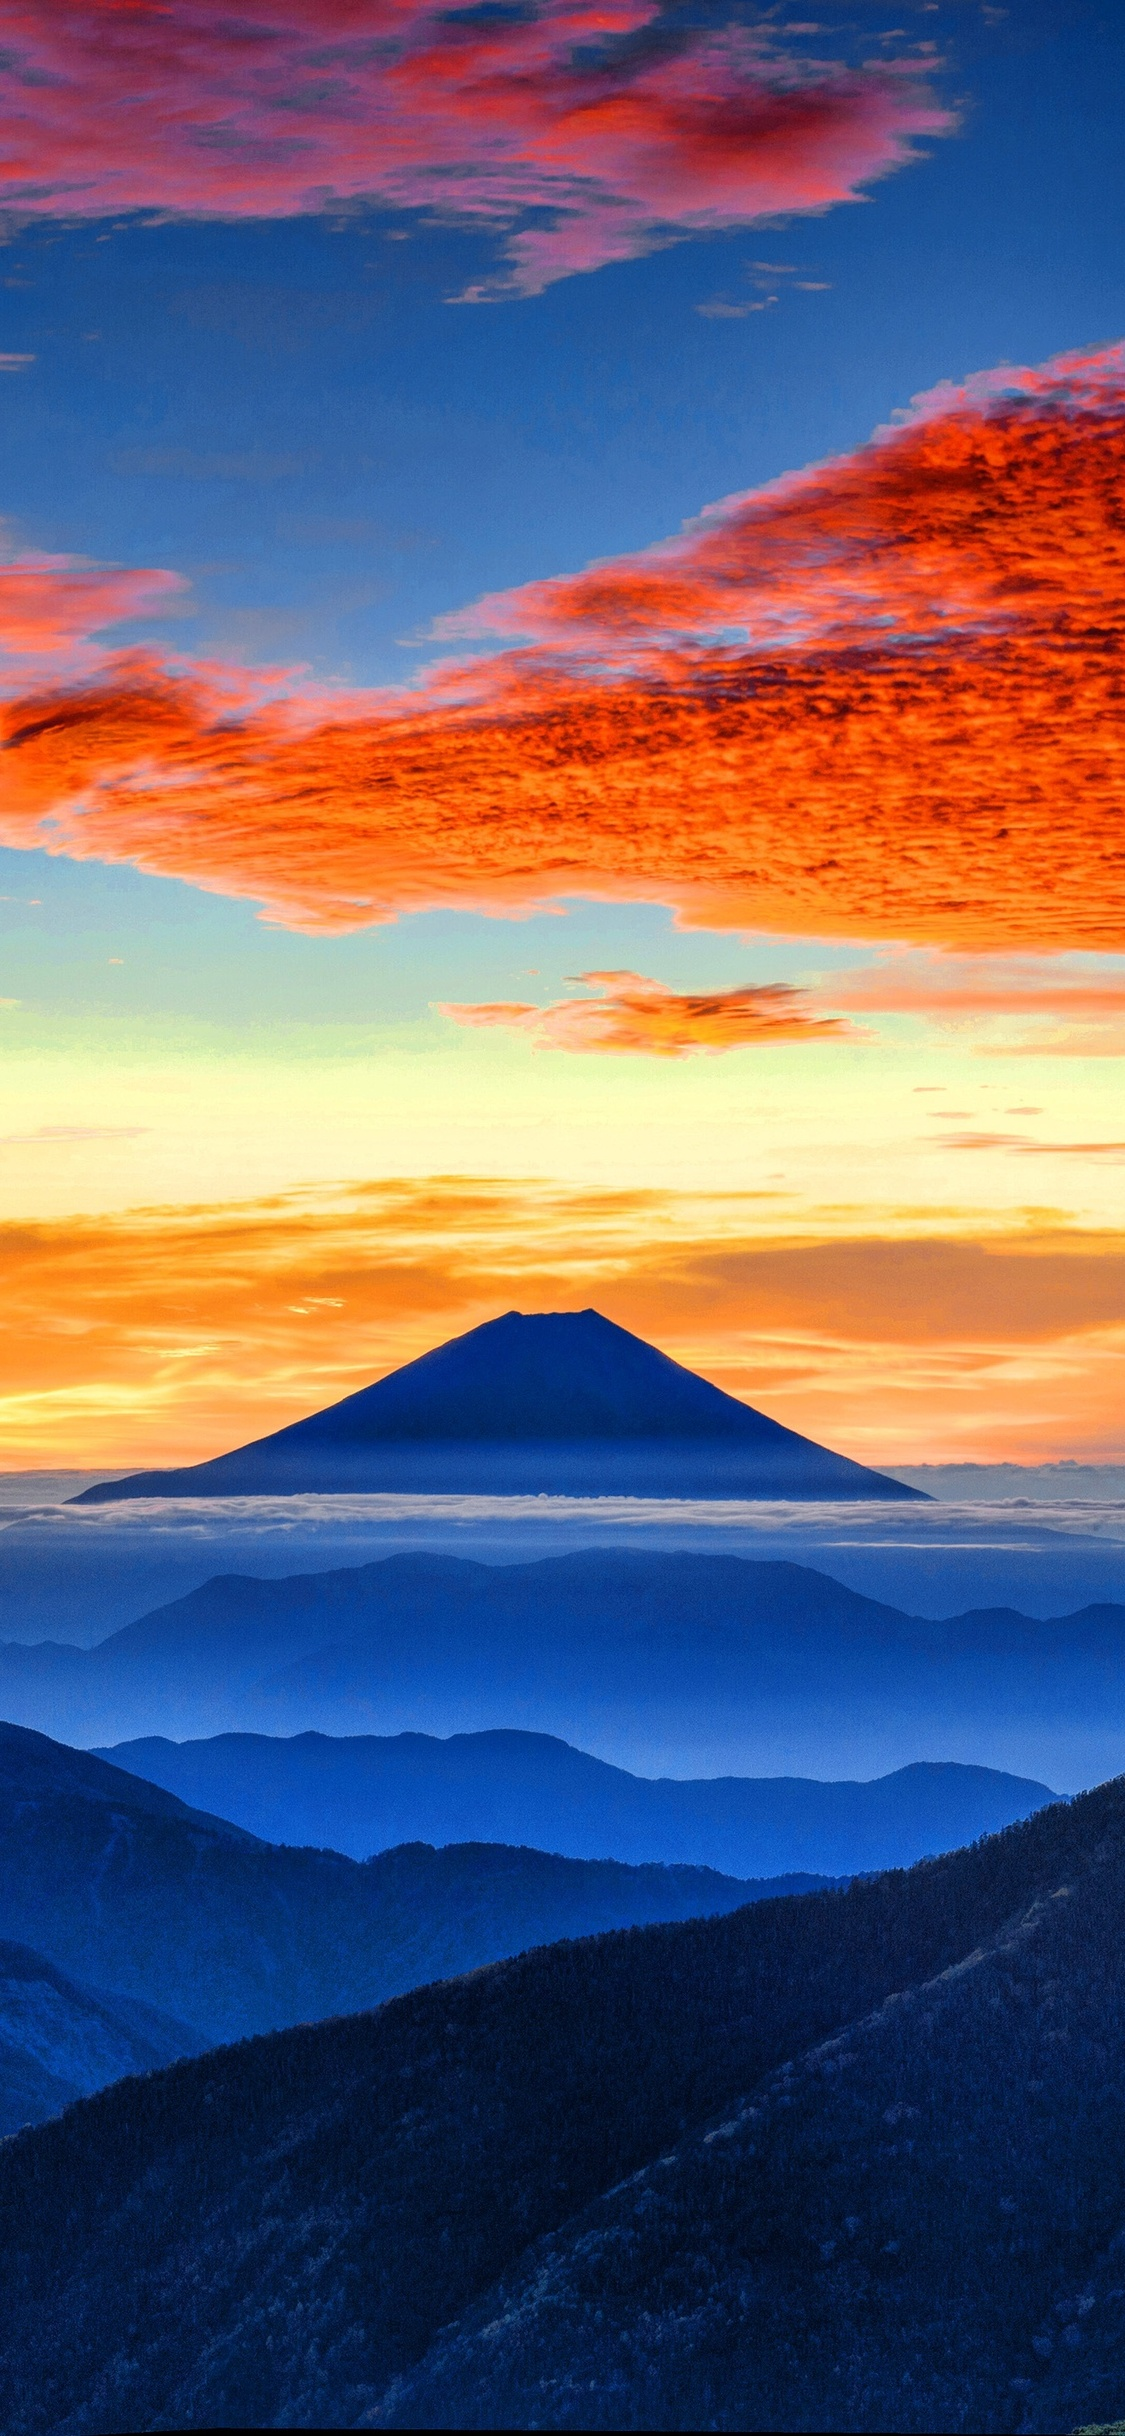 Mount Fuji Panaromic 8k Uj